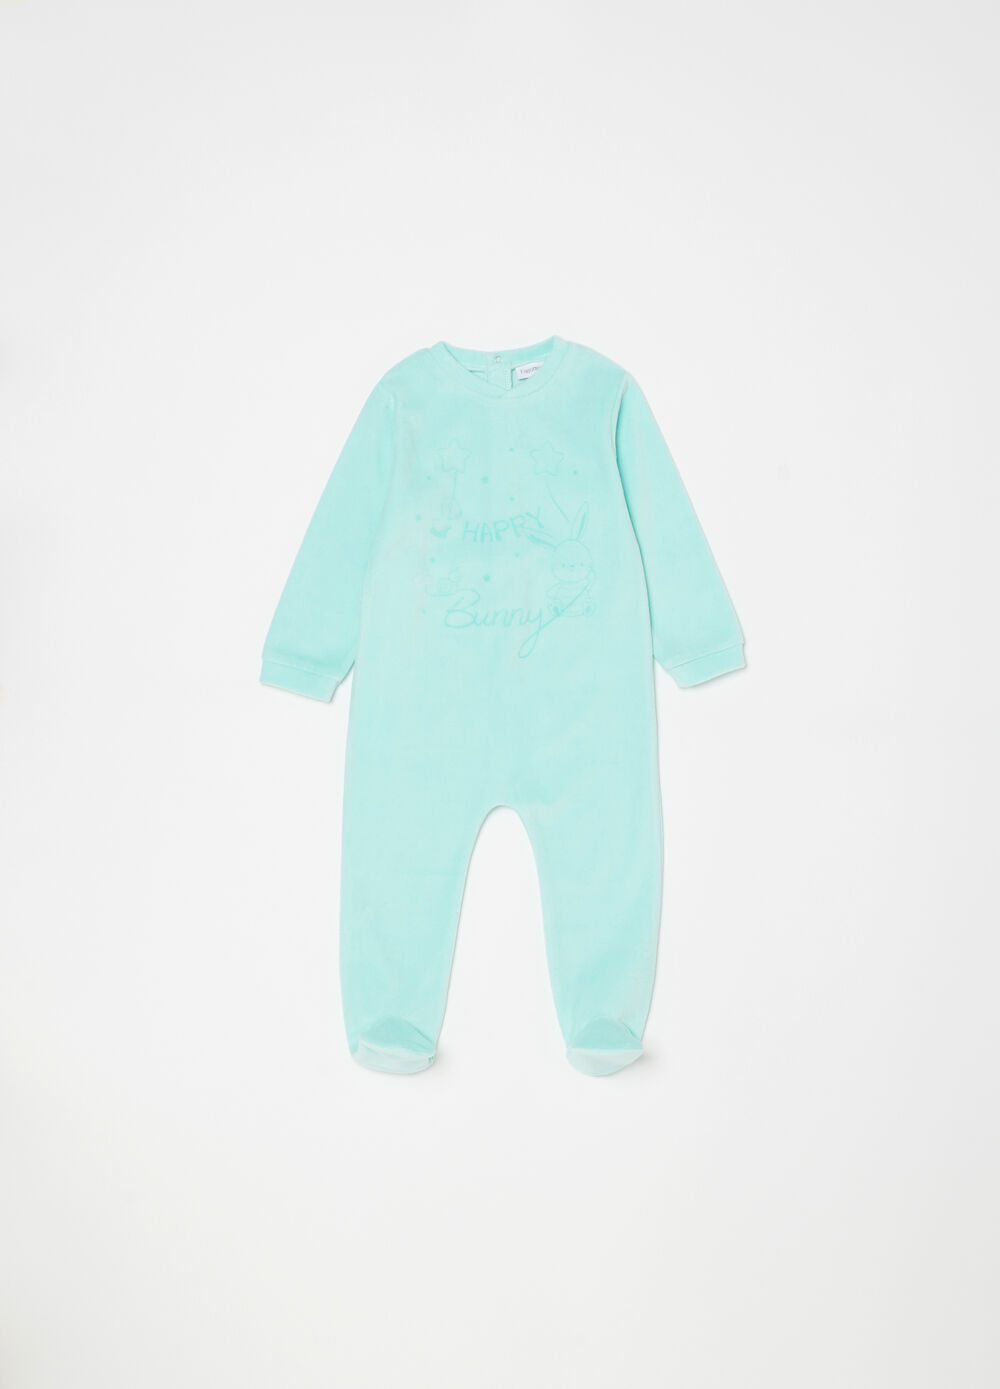 V-neck onesie with feet and print